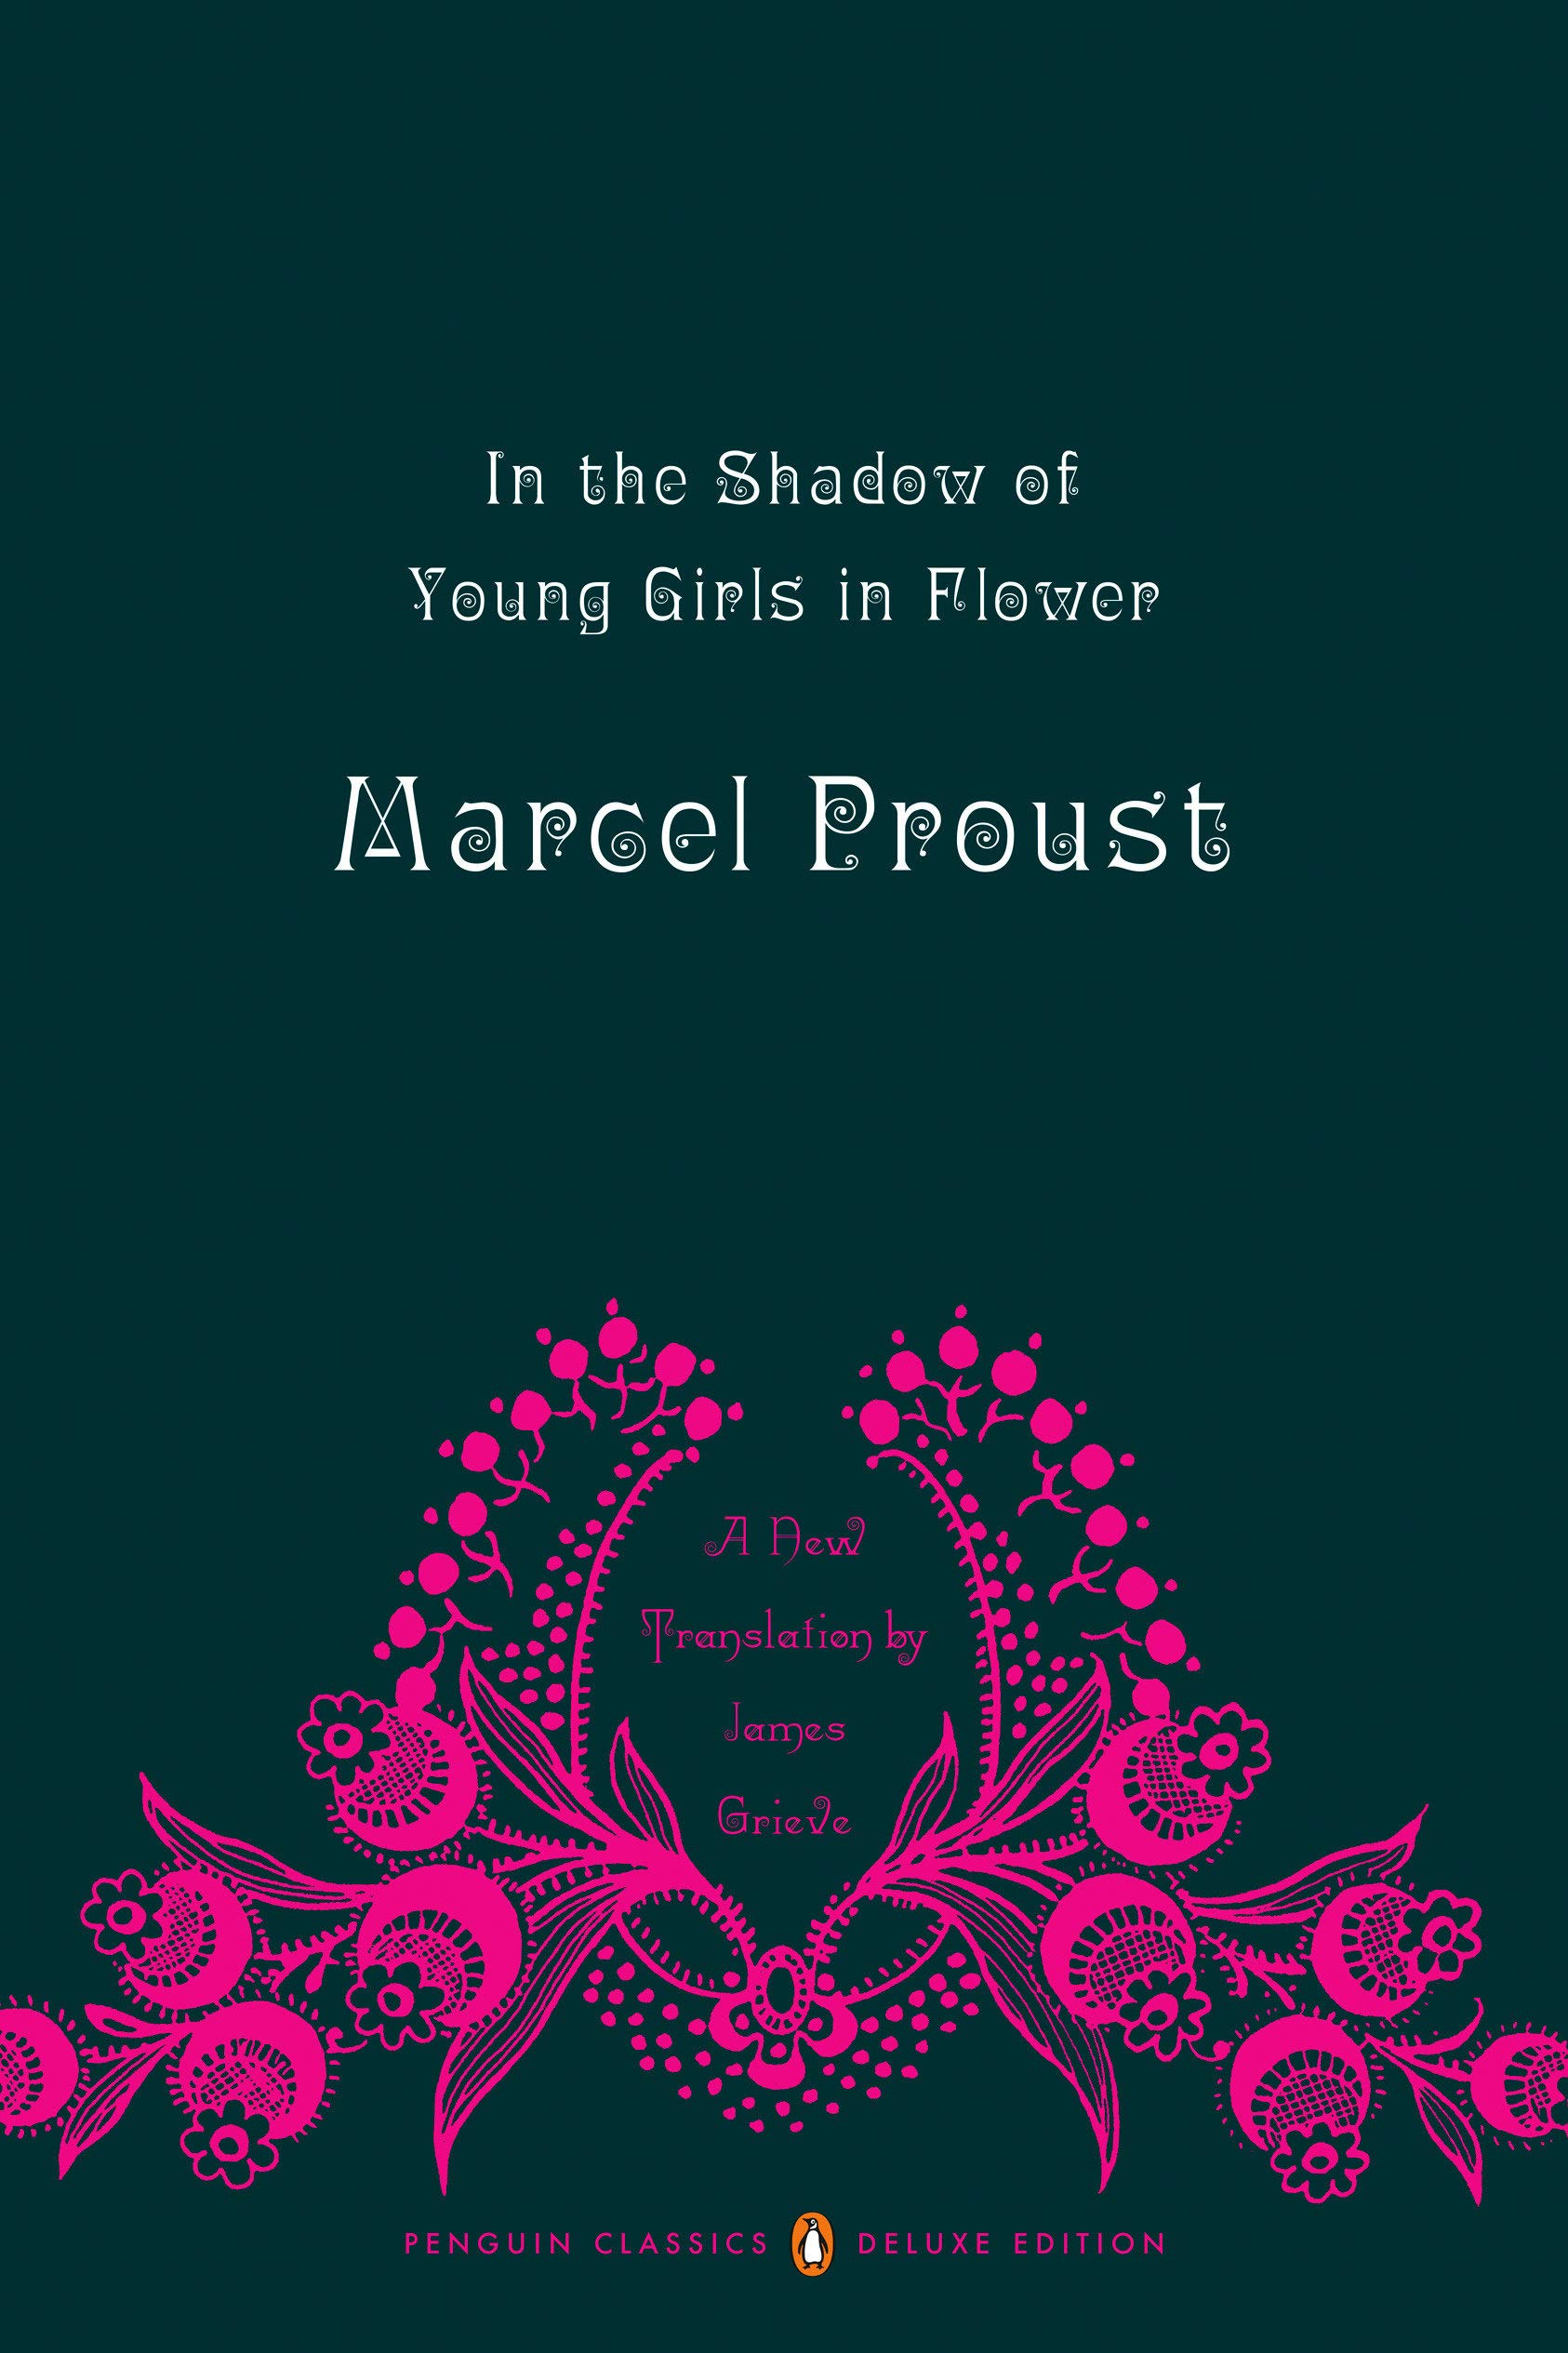 Amazon.com: In the Shadow of Young Girls in Flower: In Search of Lost Time, Vol. 2 (Penguin Classics Deluxe Edition) (9780143039075): Proust, Marcel, Grieve, James, Prendergast, Christopher, Grieve, James, Grieve, James: Books